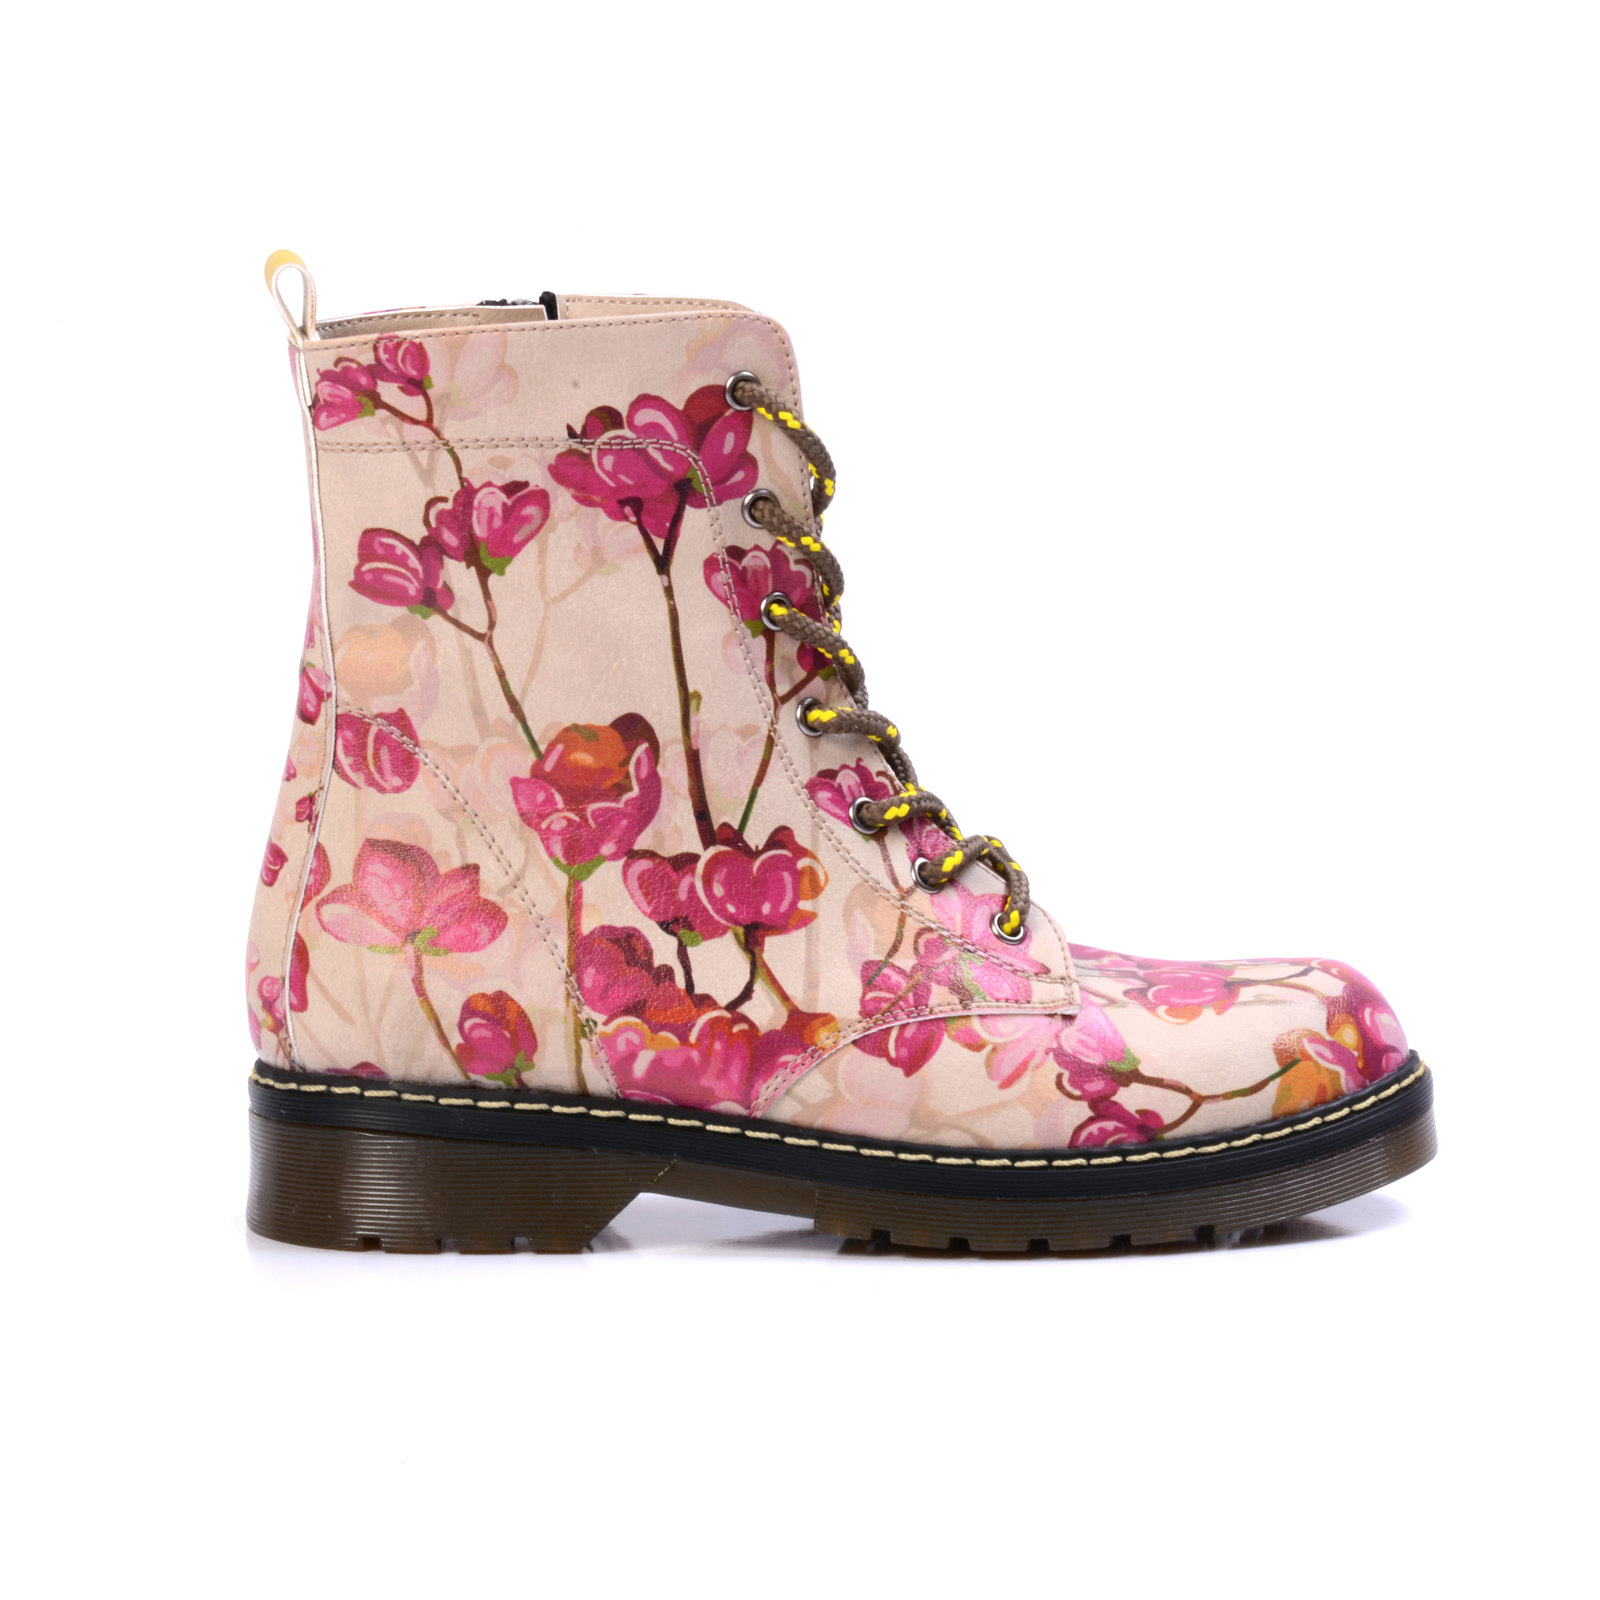 Goby scarpe Pink Flowers rosa